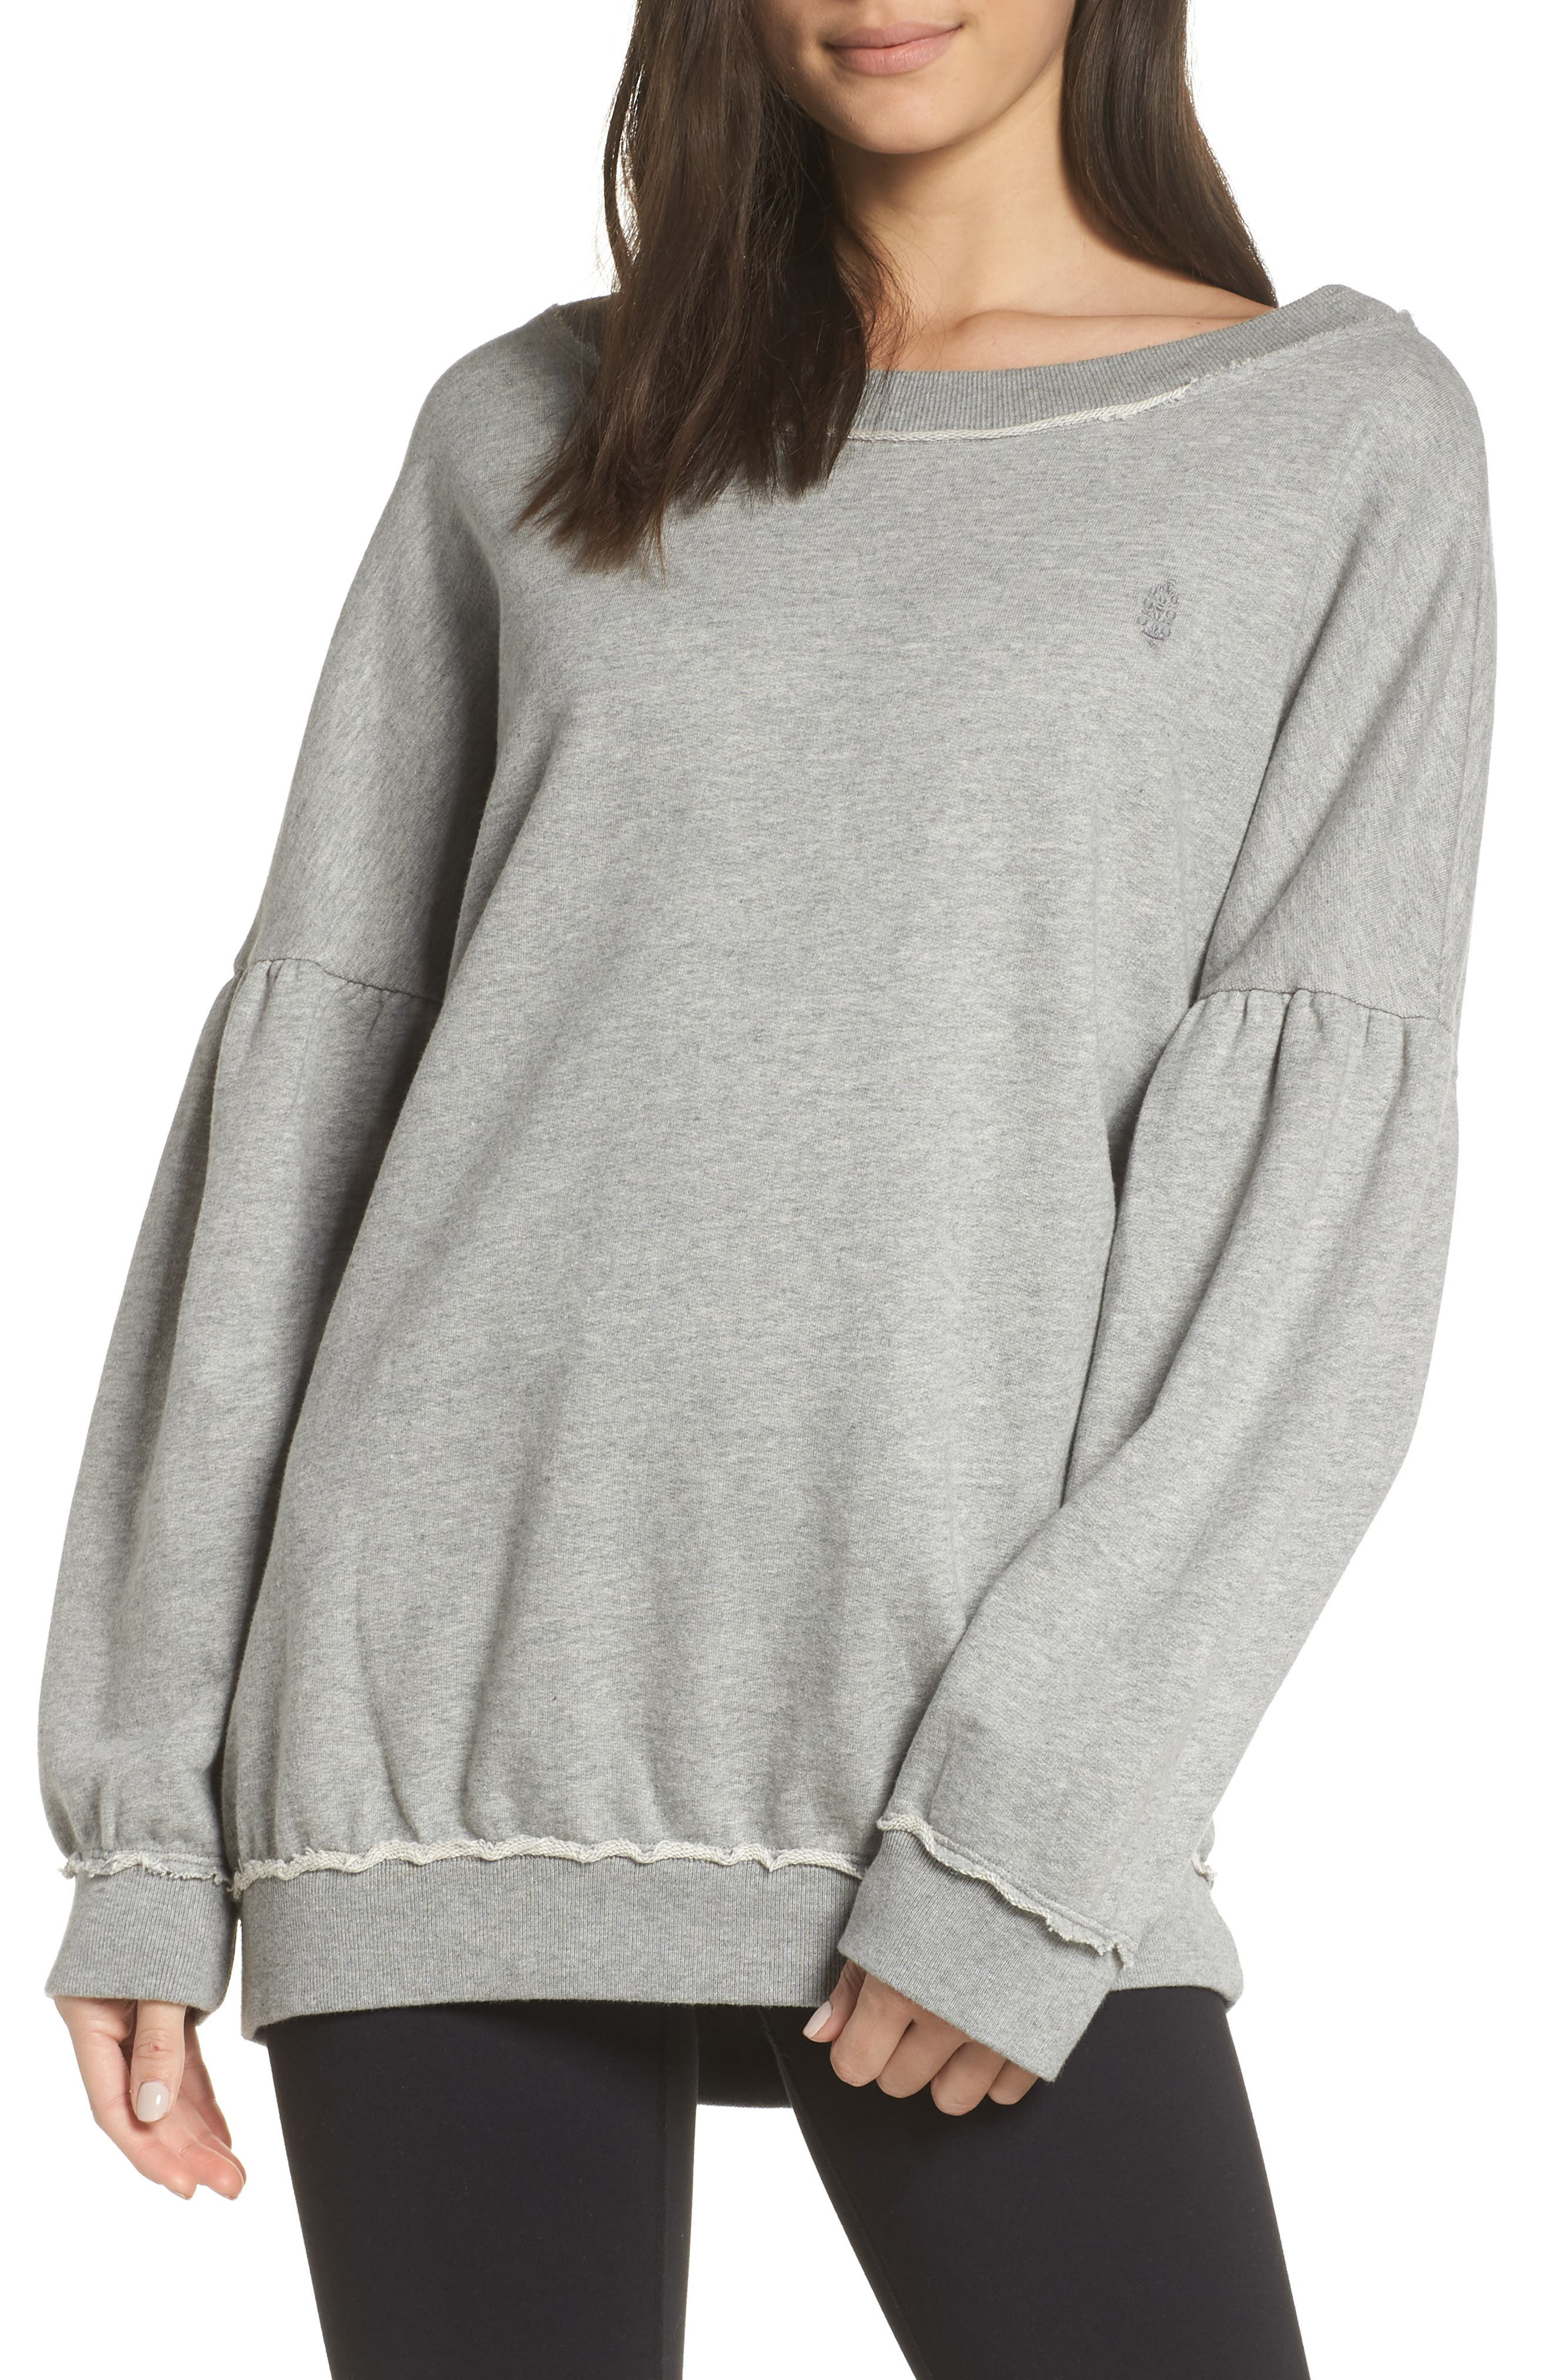 Free People Movement Make It Count Pullover, Grey